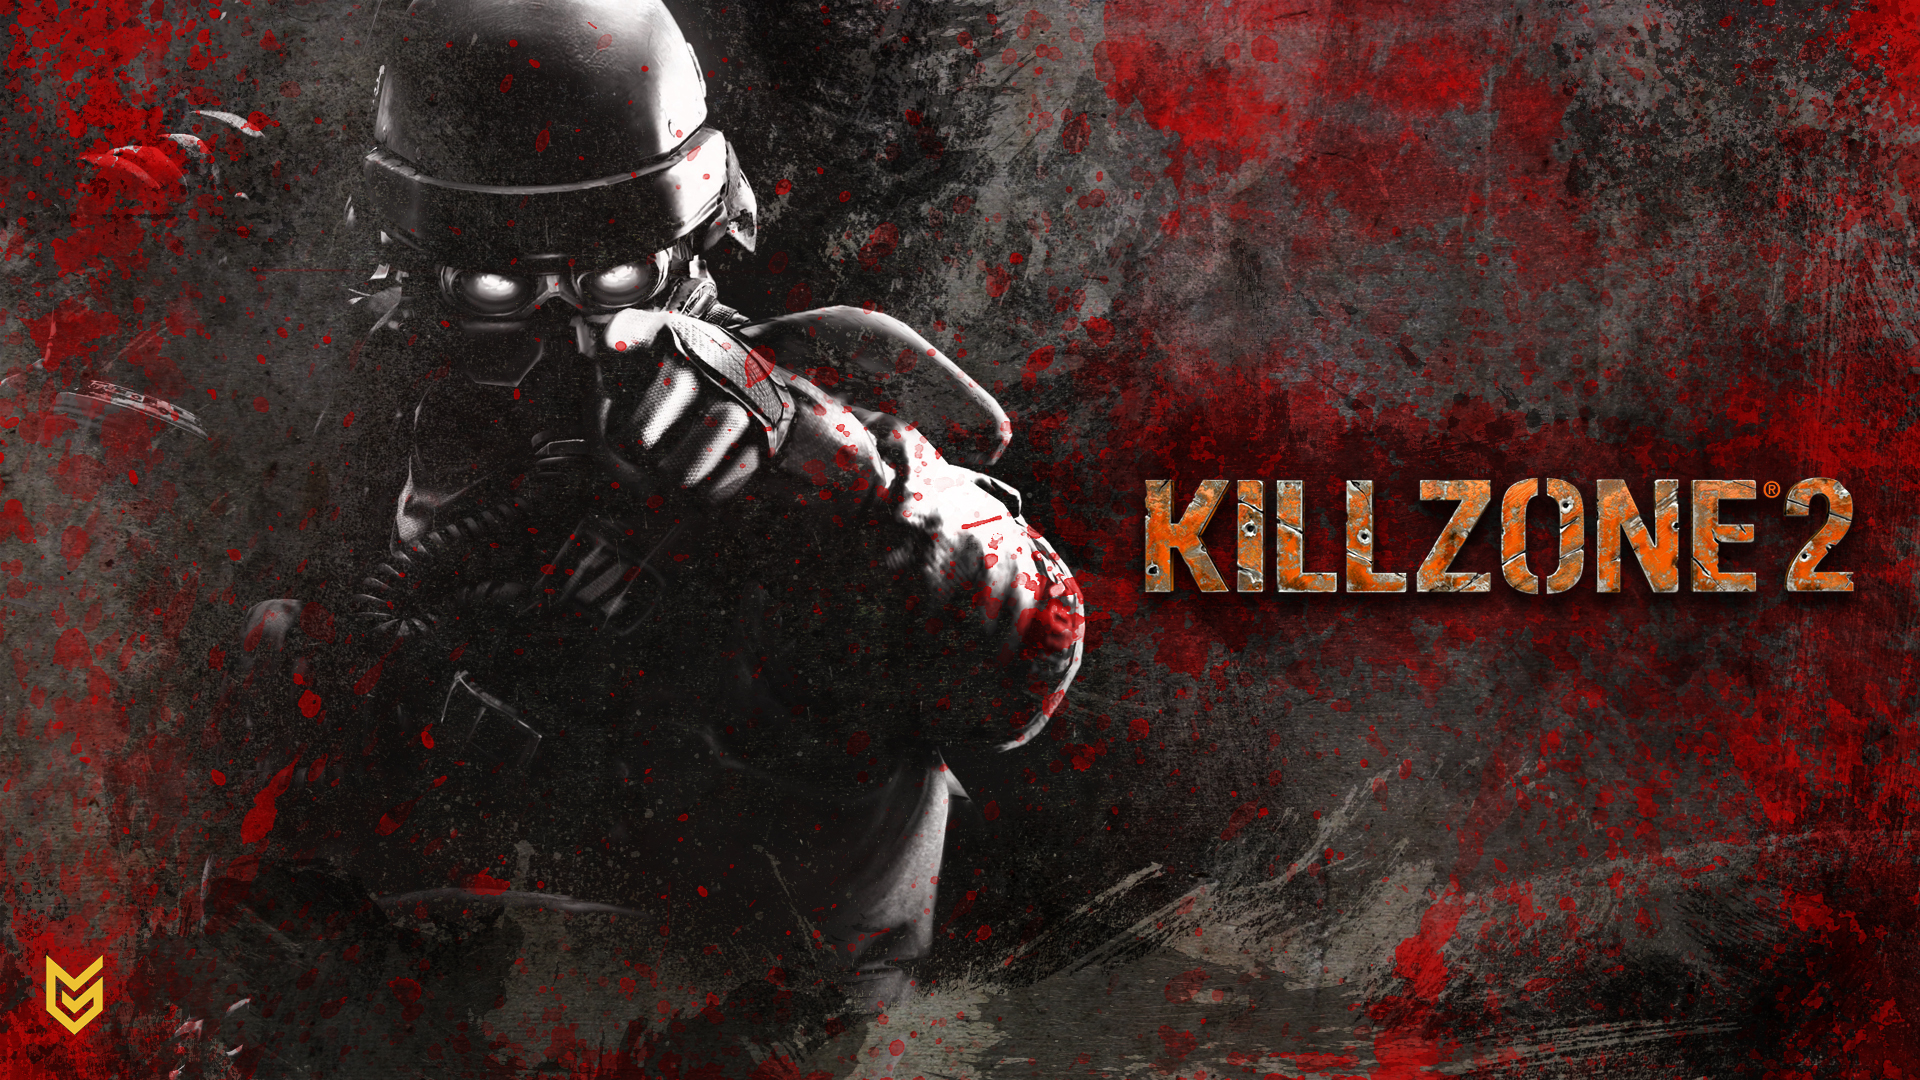 This is a Killzone 2 - You're Next wallpaper. This Killzone 2 - You're Next